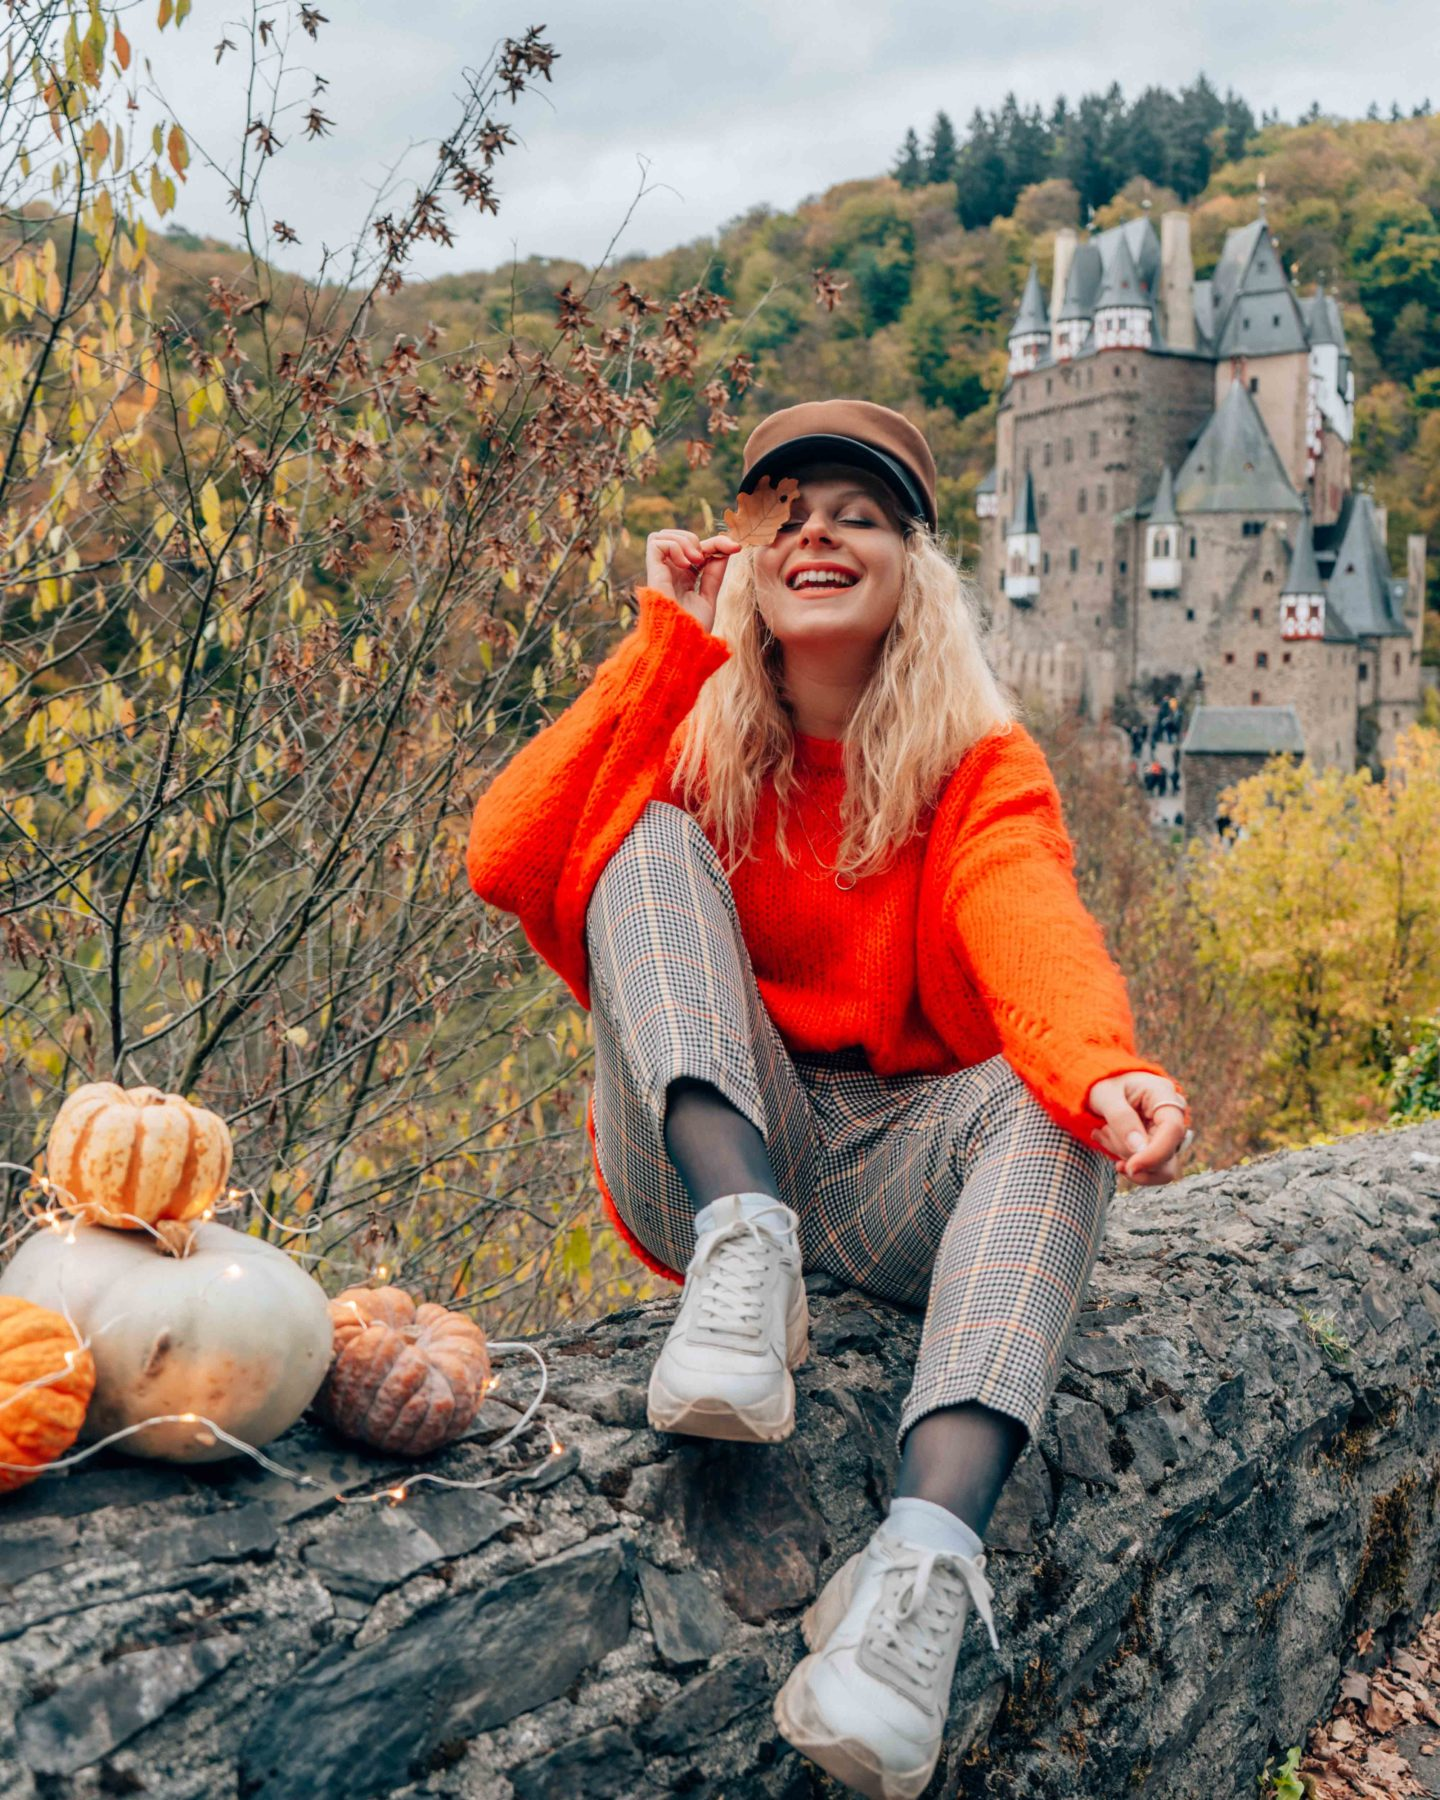 Autumn vibes at Burg Eltz castle